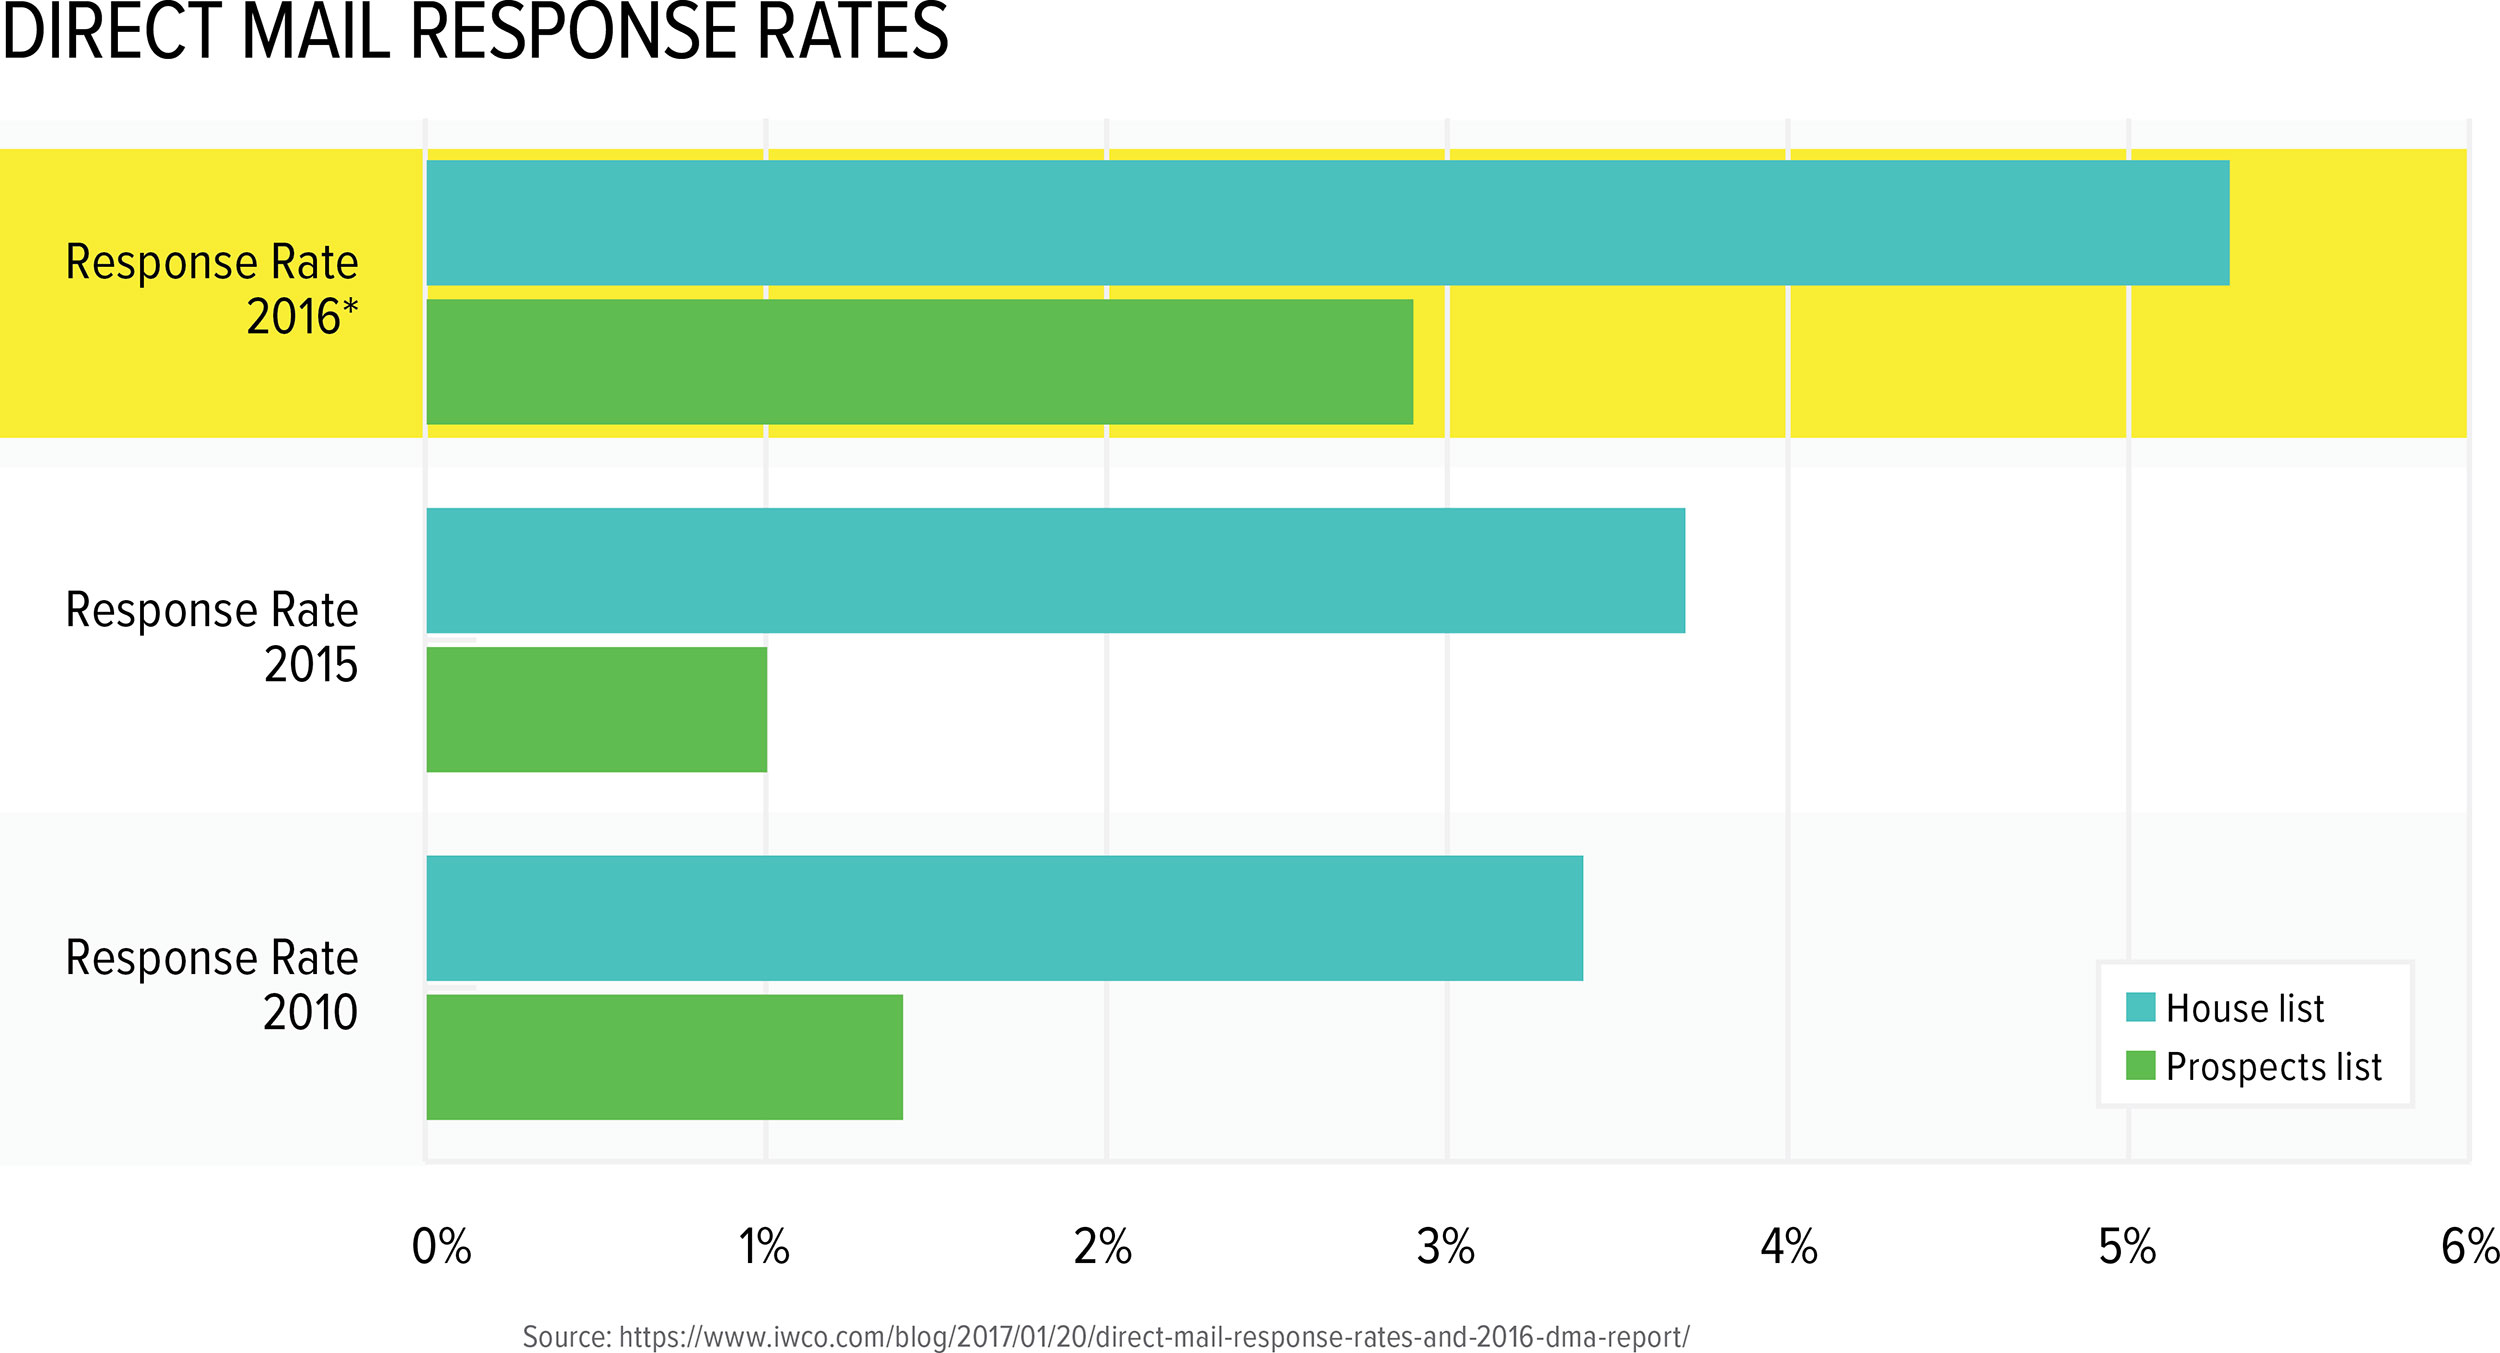 Response Rates for Direct Mail Continue to Rise According to DMA Report